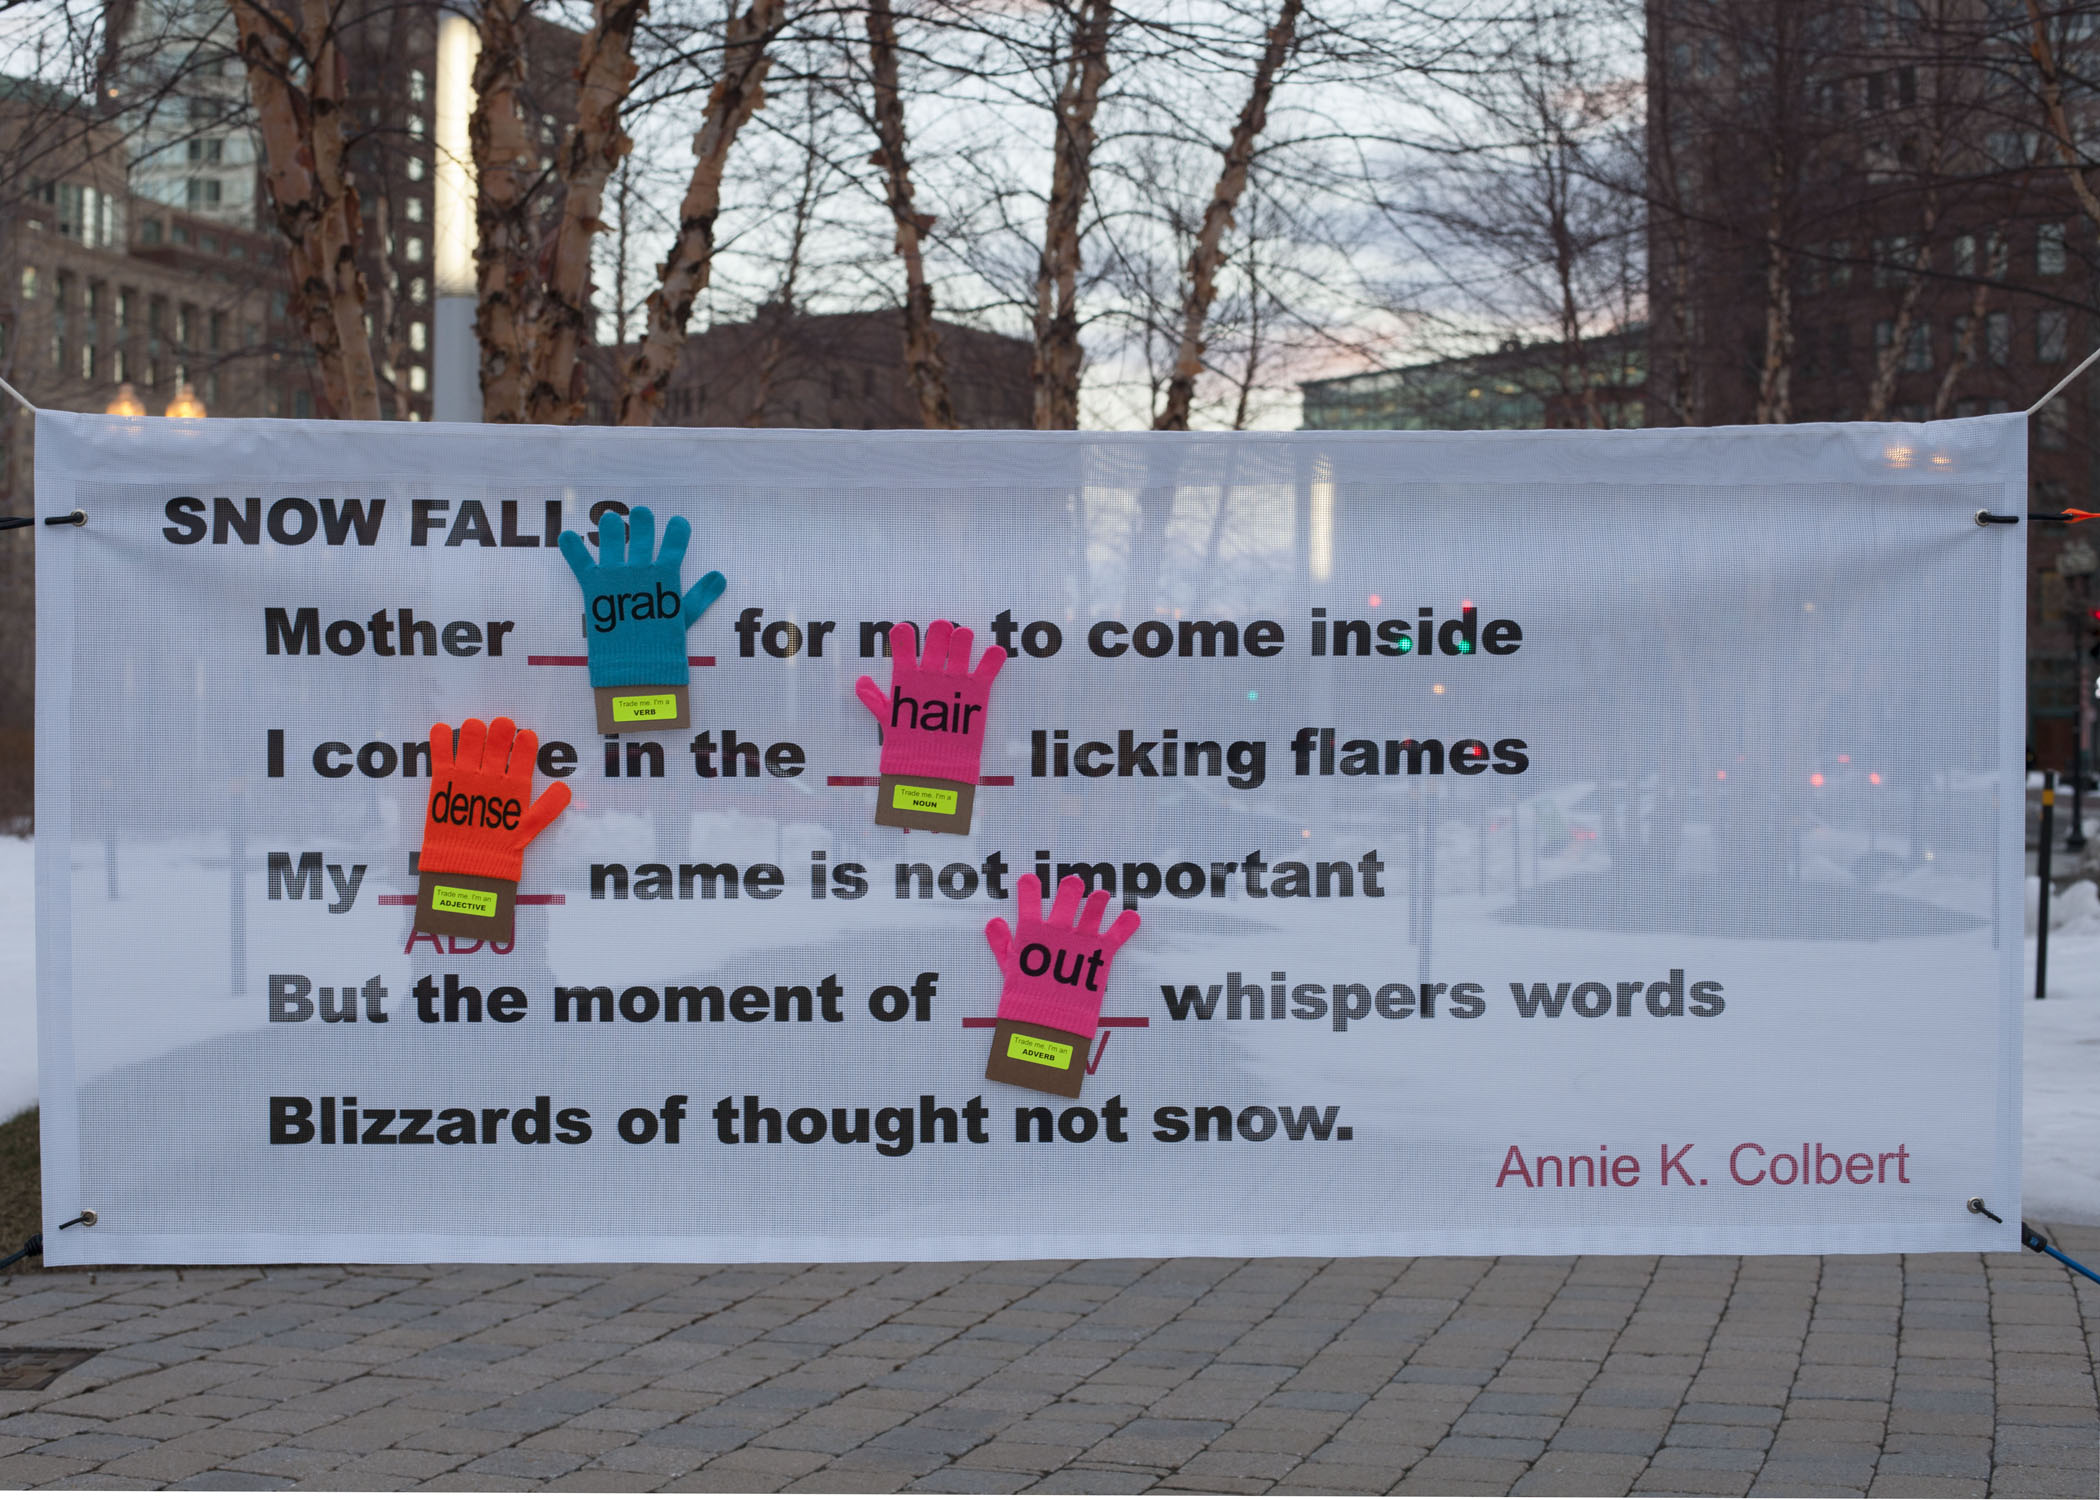 FRIGID PHRASES   2013 A game of outdoor mad libs poetry played with gloves, developed with Emily Lombardo for the Rose Kennedy Greenway, Boston.